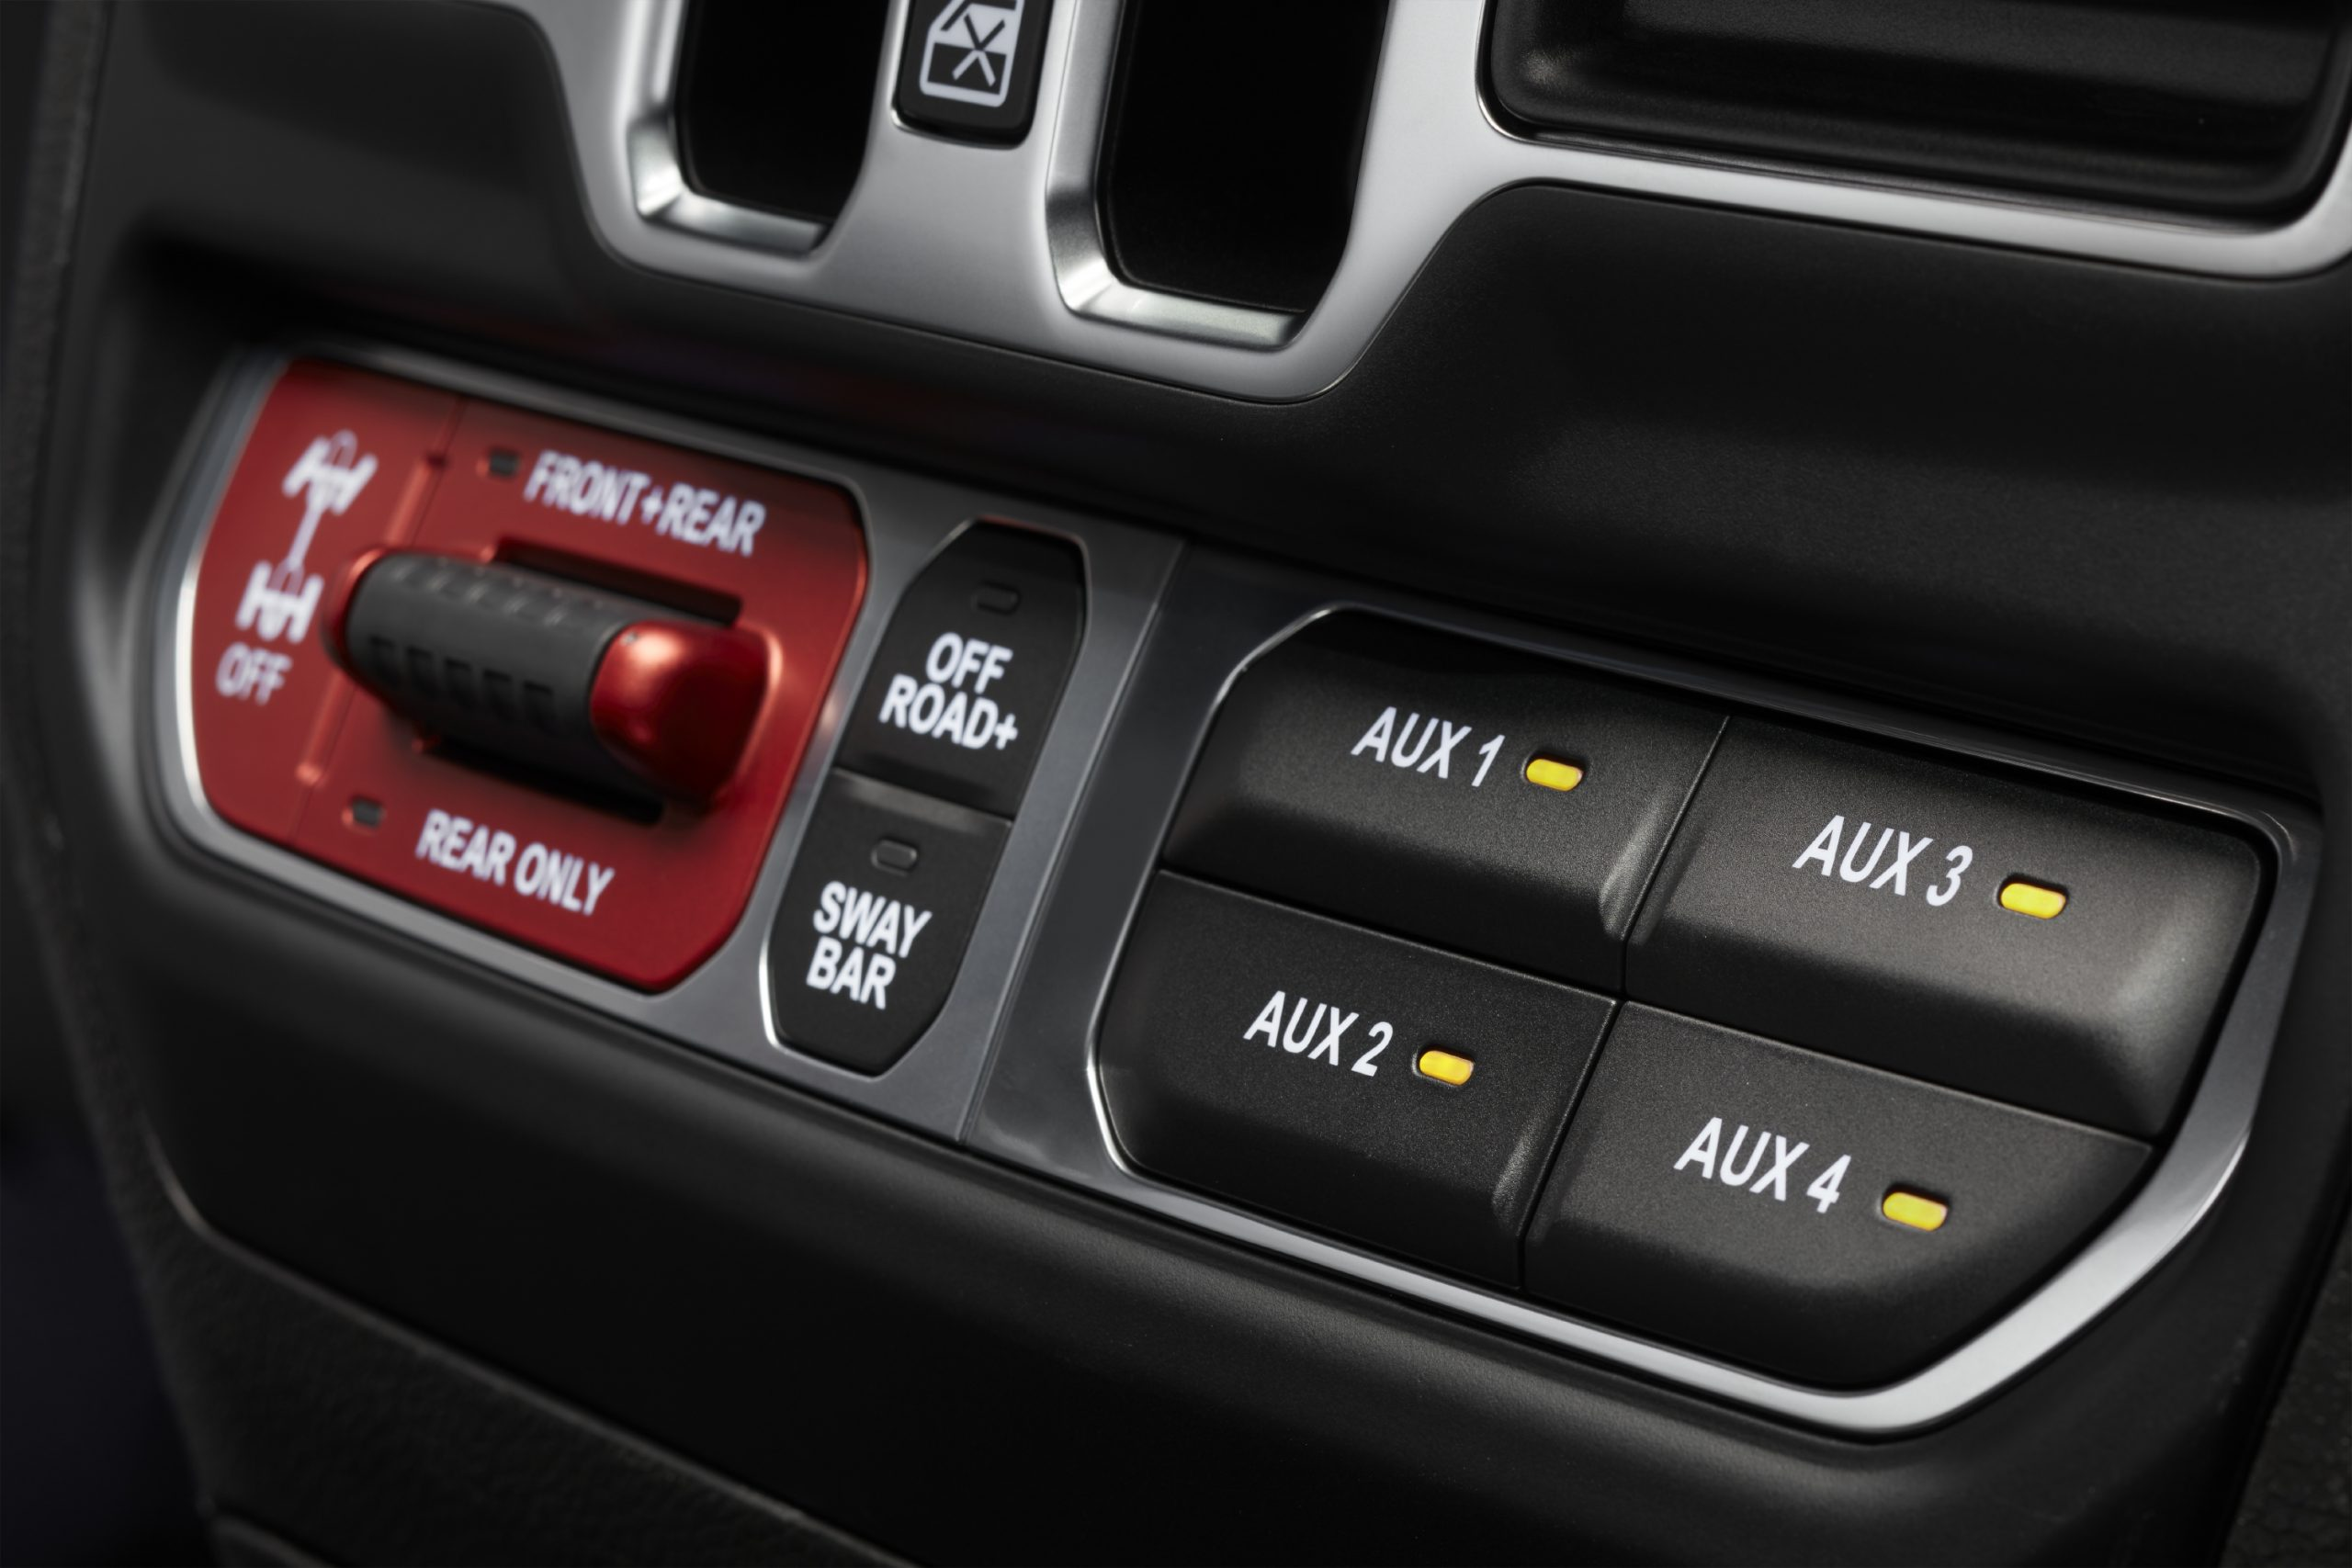 2021 Jeep Wrangler Rubicon 392 off-road switches